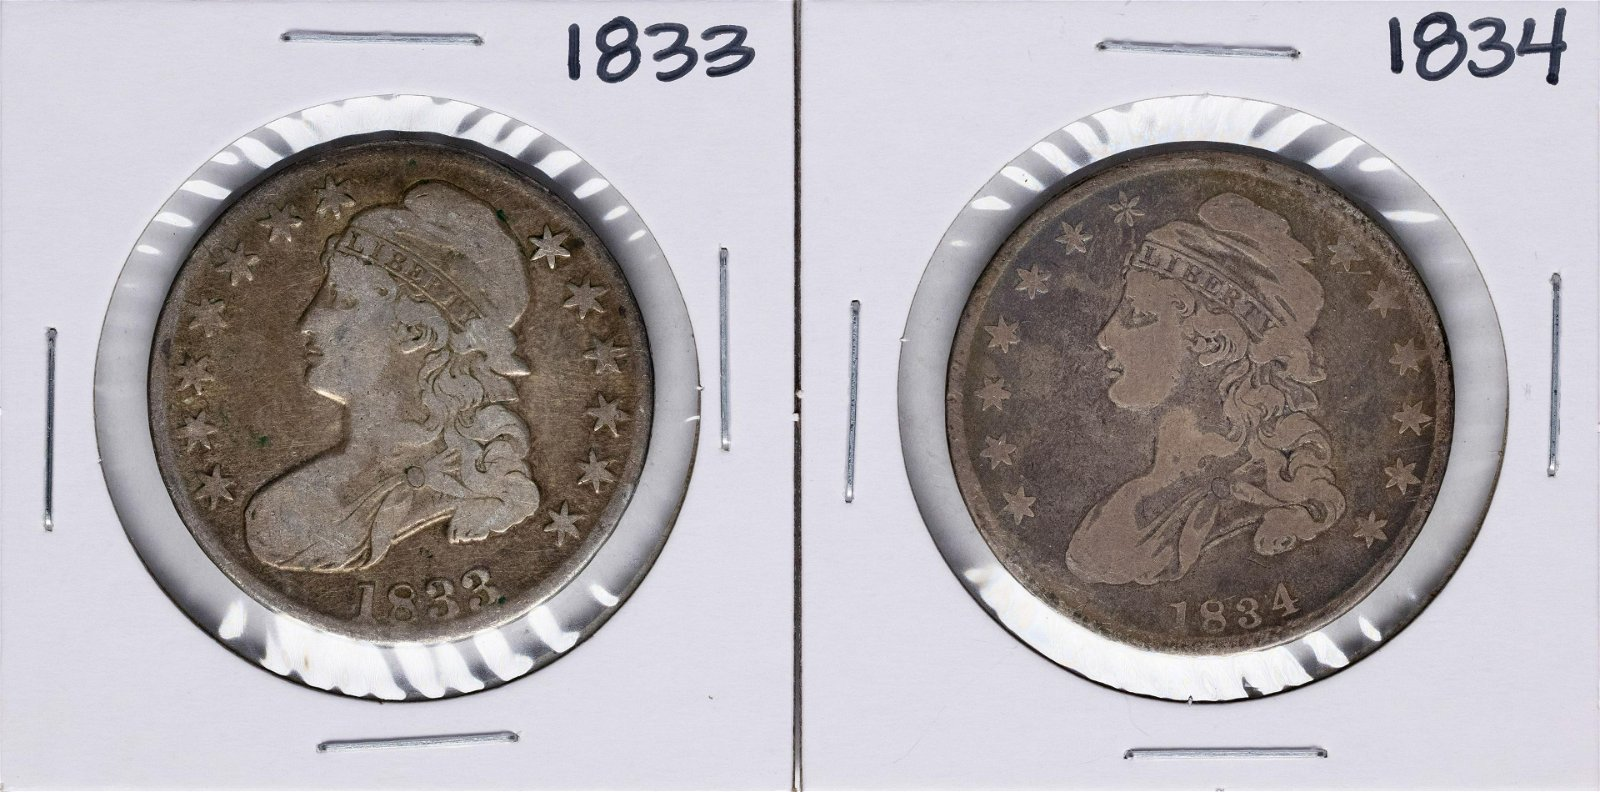 Lot of 1833-1834 Capped Bust Half Dollar Coins